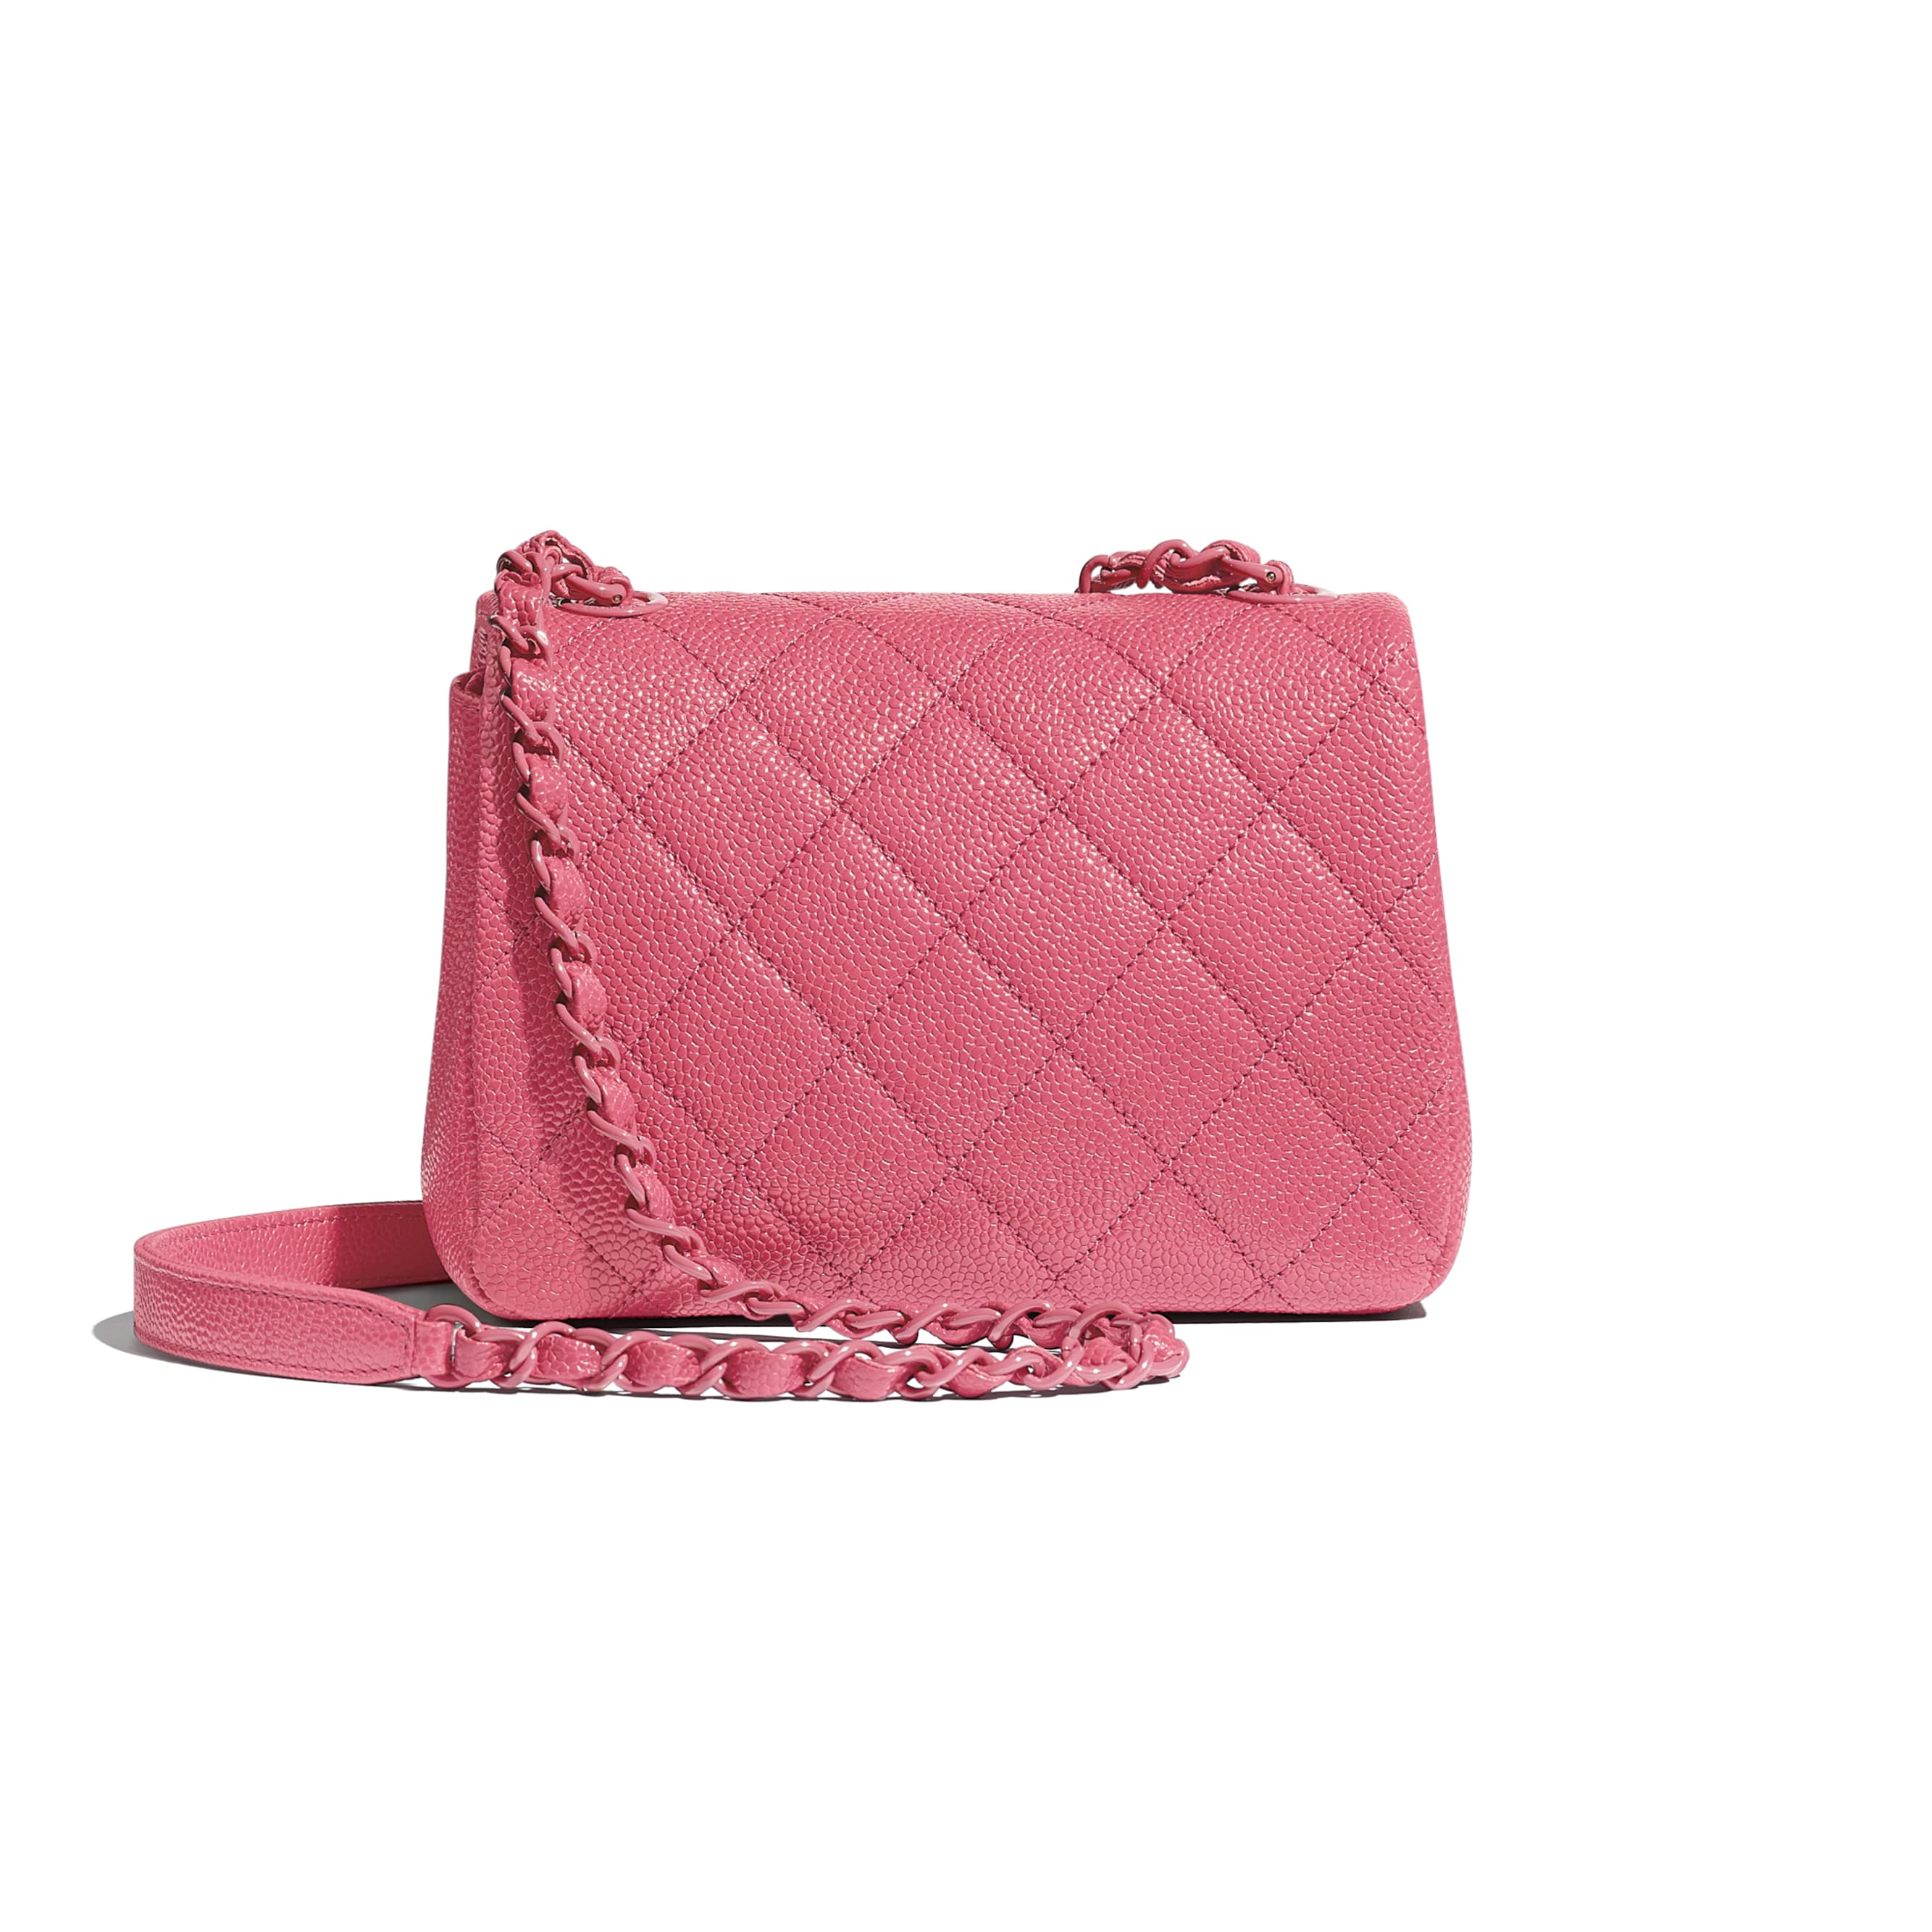 Flap Bag - Light Pink - Grained Calfskin & Lacquered Metal - Alternative view - see standard sized version